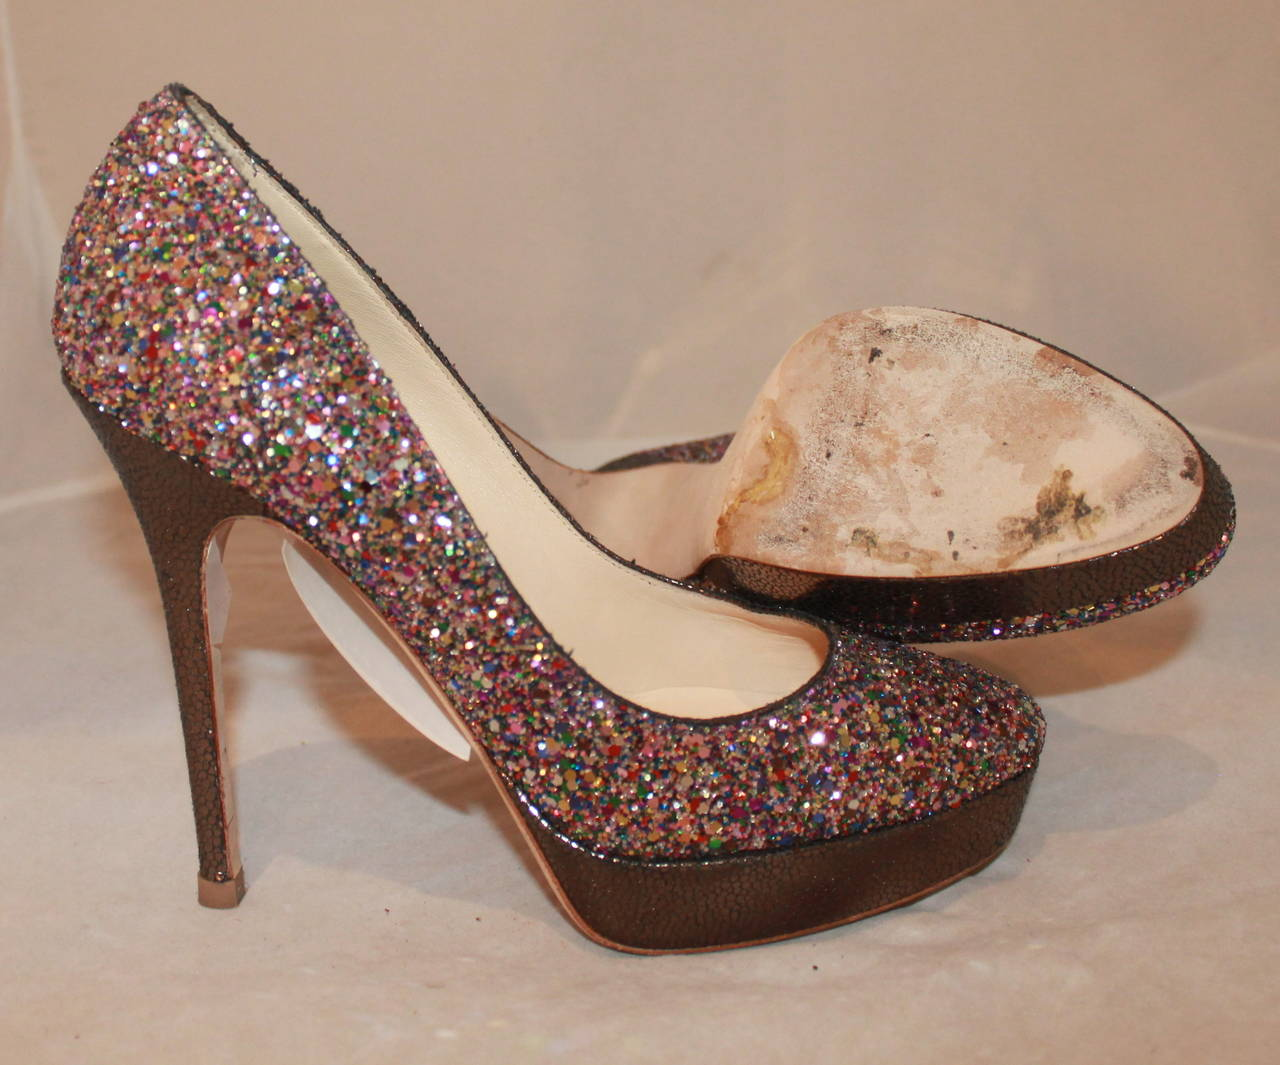 Jimmy Choo Metallic Pink Sparkle Shoes - 39 5